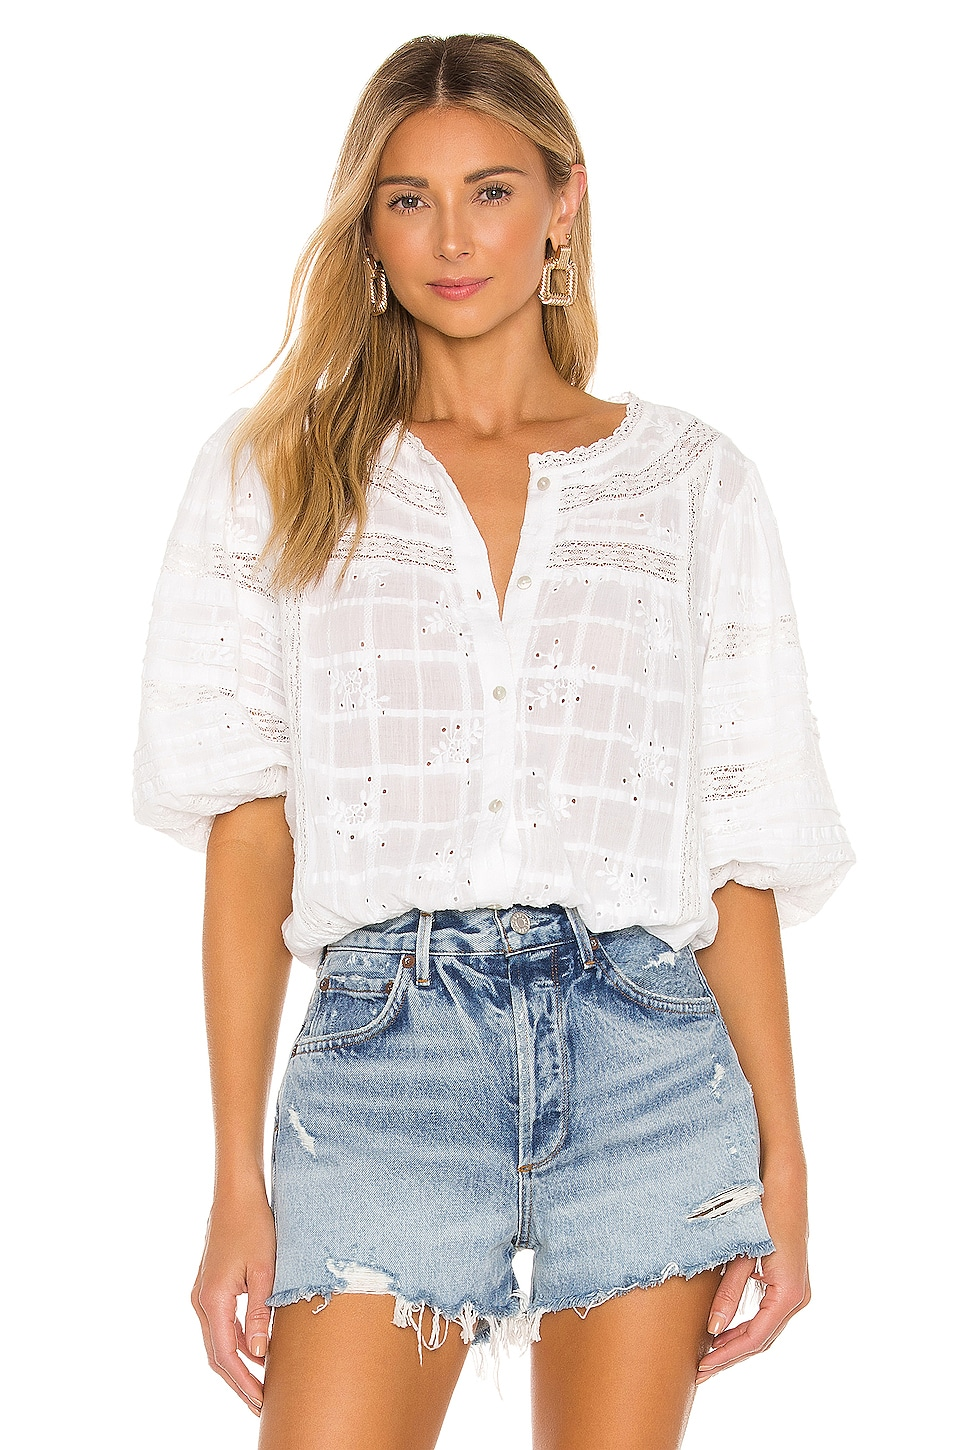 Country Lane Heirloom Blouse             Sanctuary                                                                                                       CA$ 167.11 10